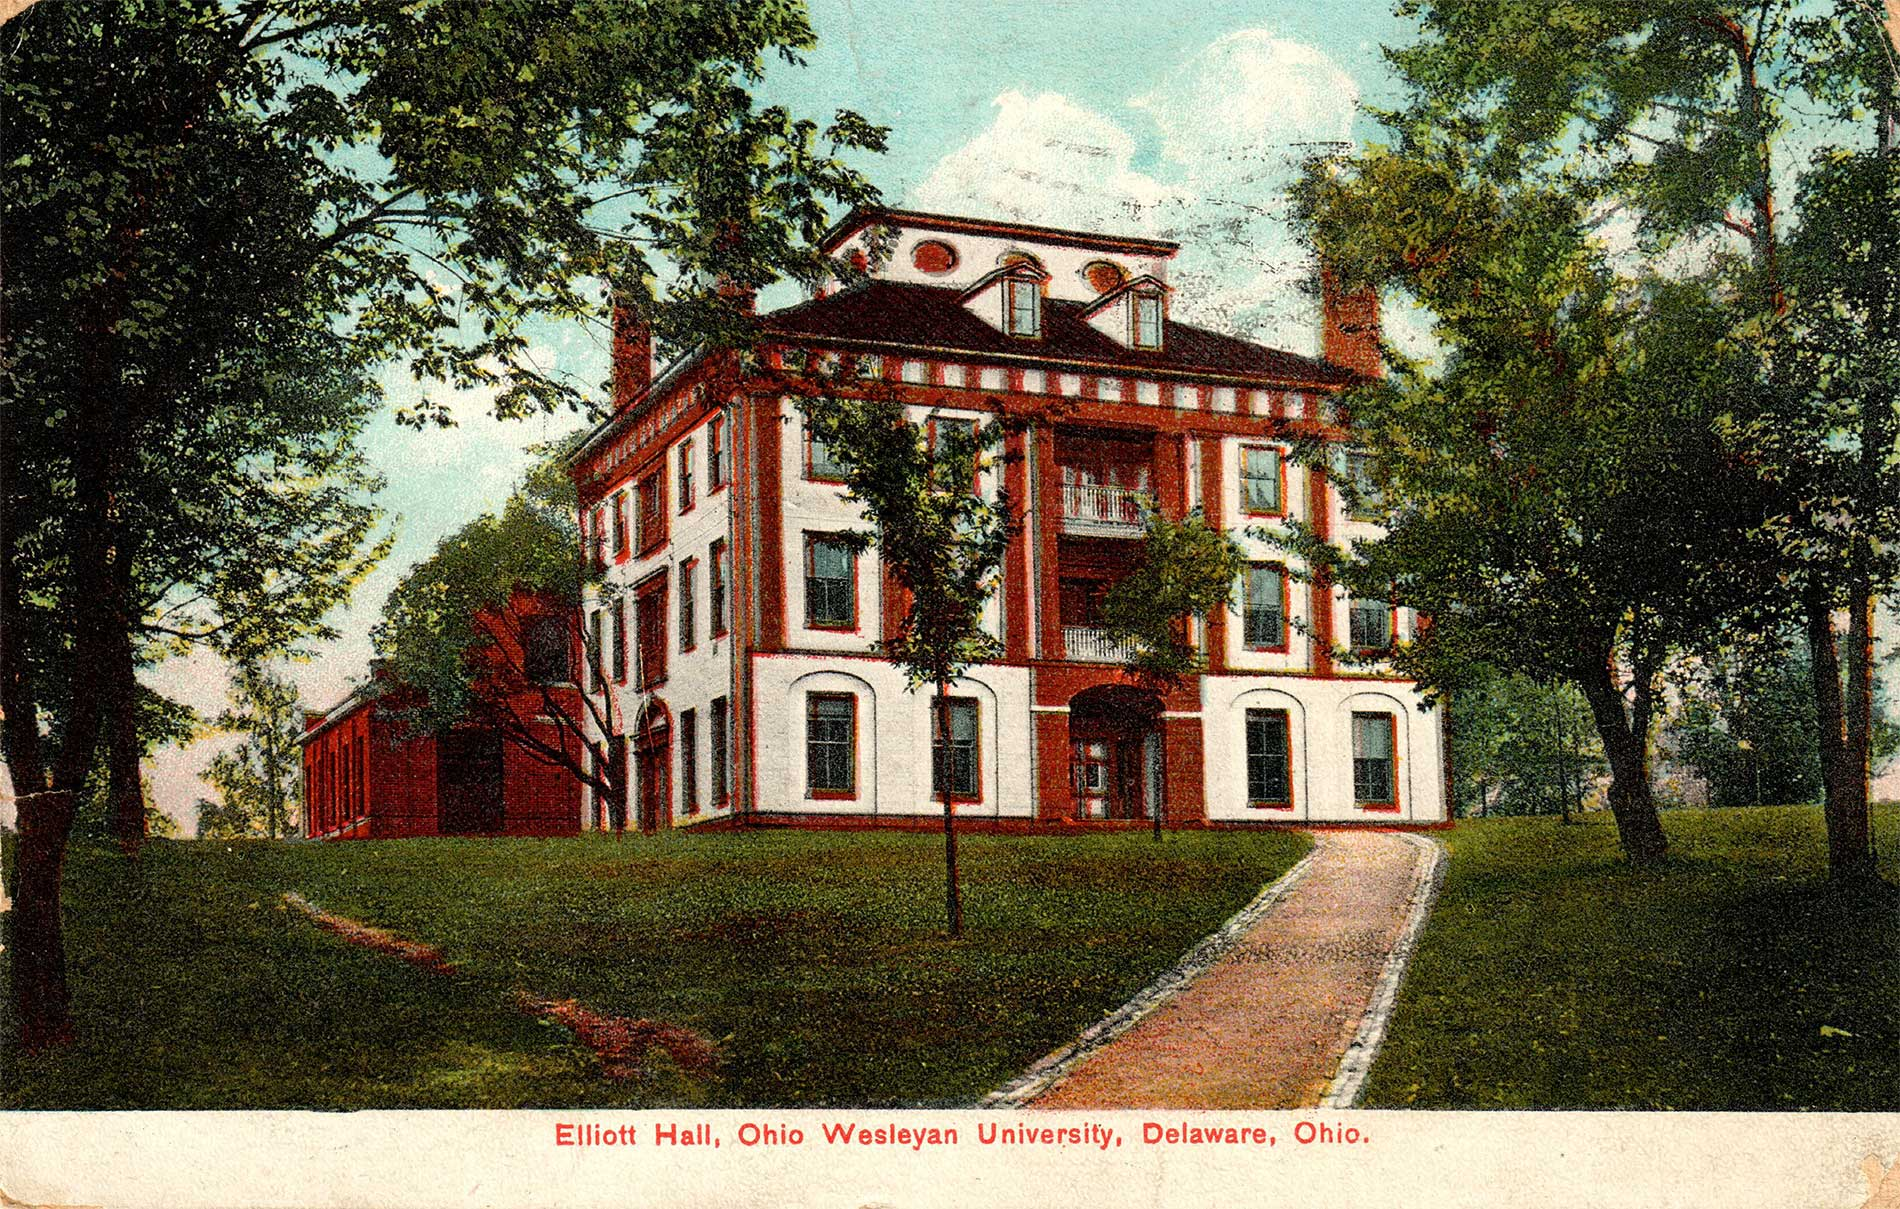 fig. 1 _ The 1833 Mansion House hotel — now part of Ohio Wesleyan University